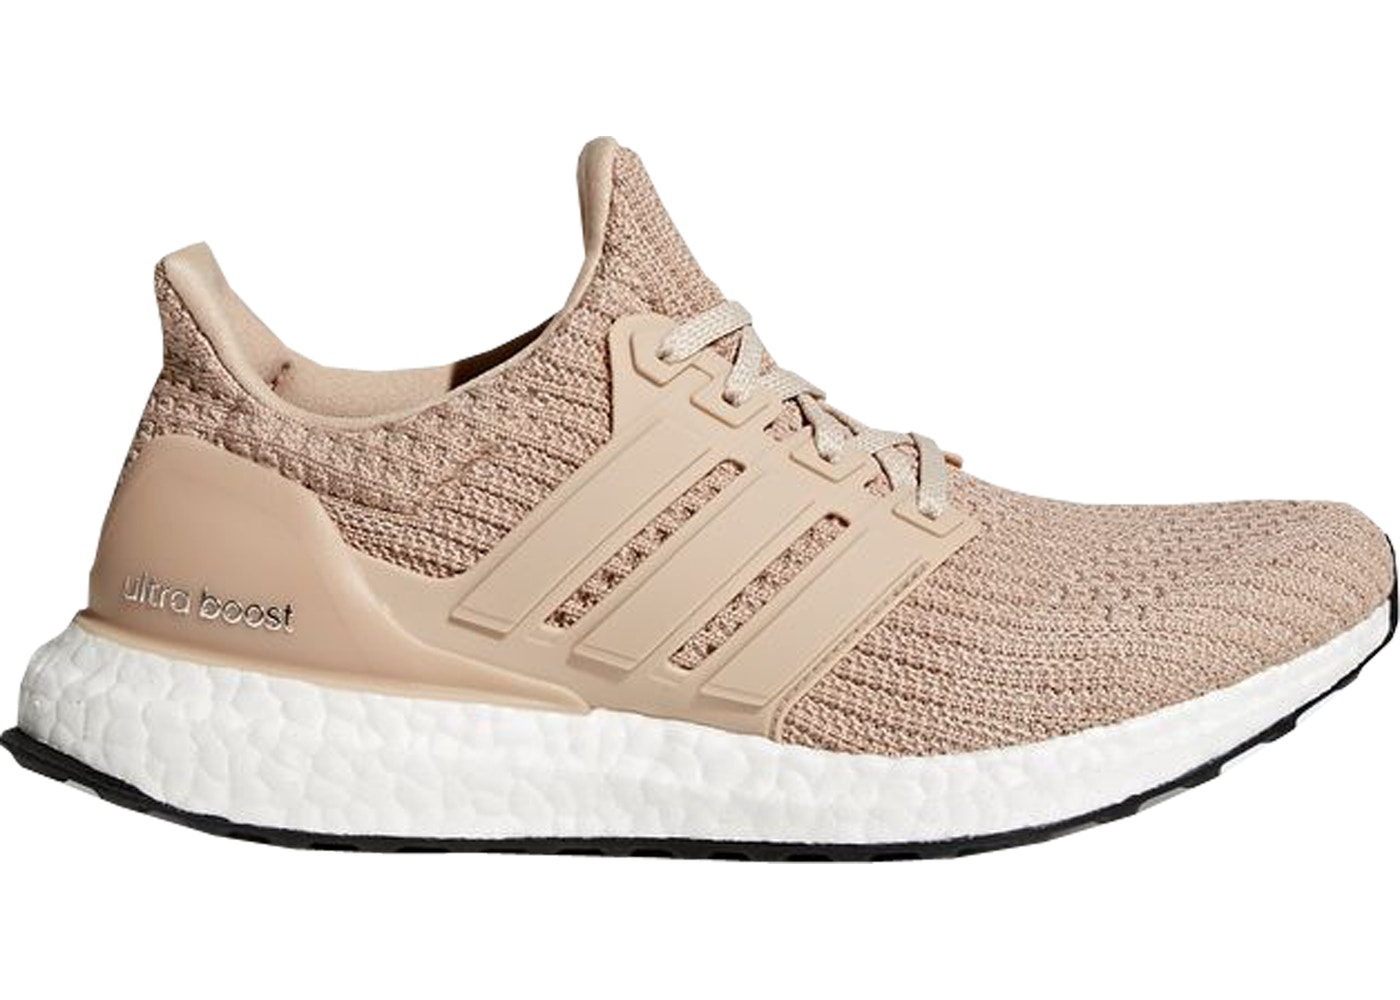 adidas Ultra Boost Shoes - New Lowest Asks 1b2ed240a33